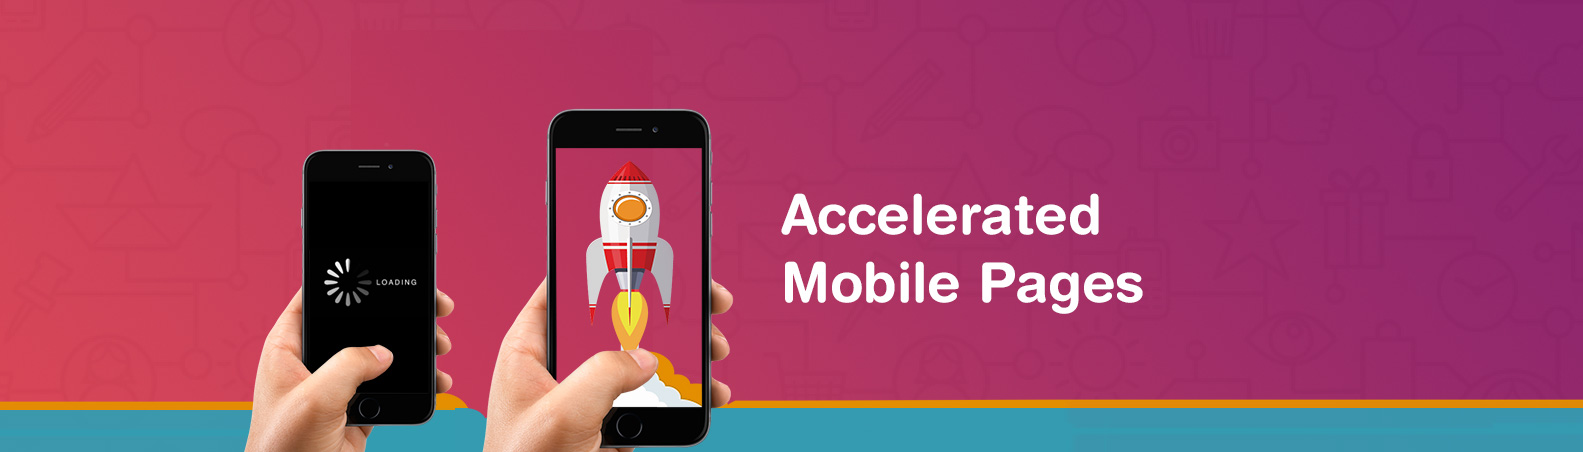 Accelerated Mobile Pages (AMP) – Optimize Mobile Pages Quickly